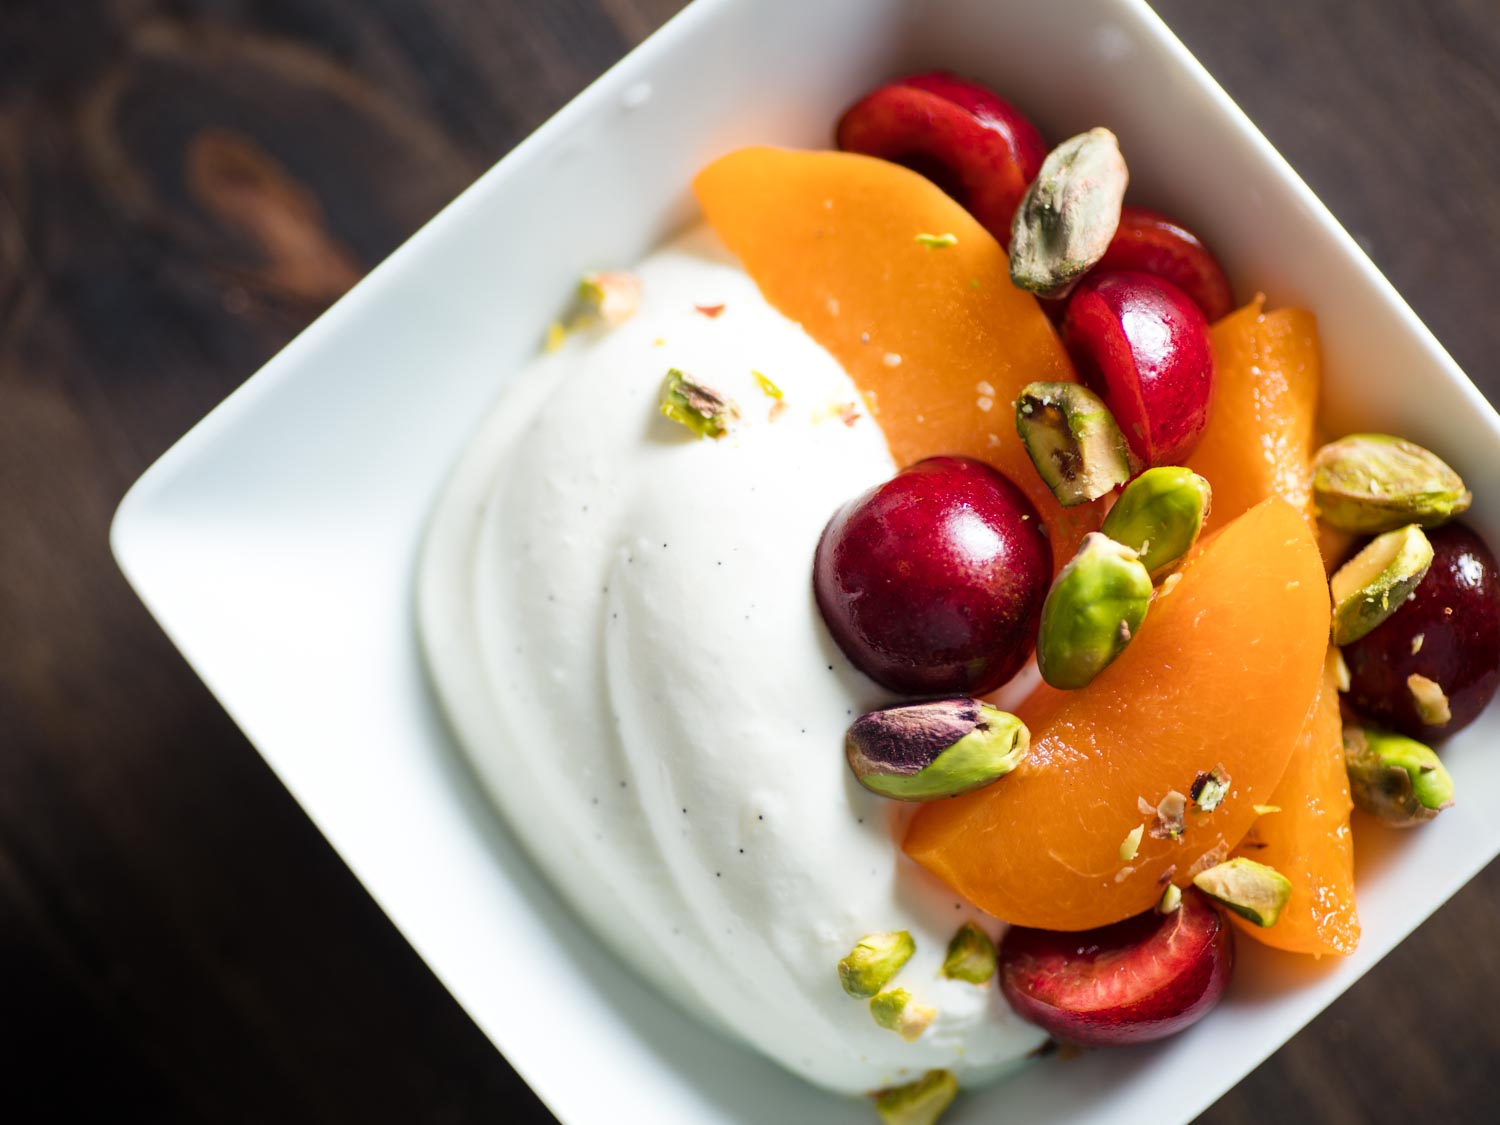 Whipped Greek yogurt with pistachios, cherries, and apricots in a white dish